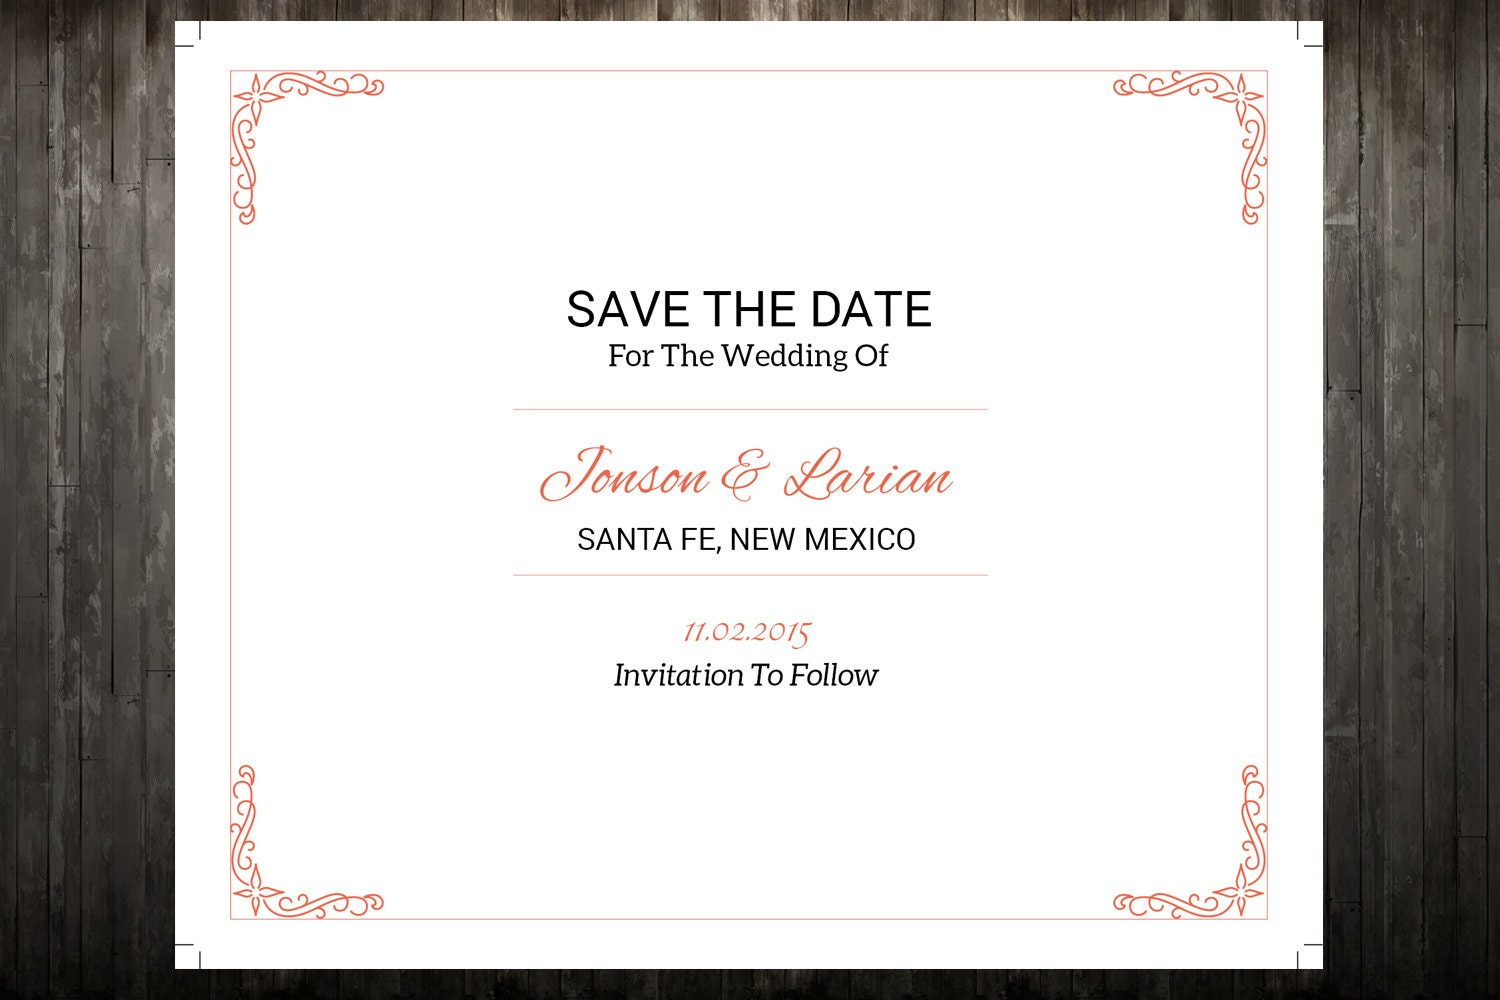 Sale save the date template wedding save the date postcard for Save the date postcard template free